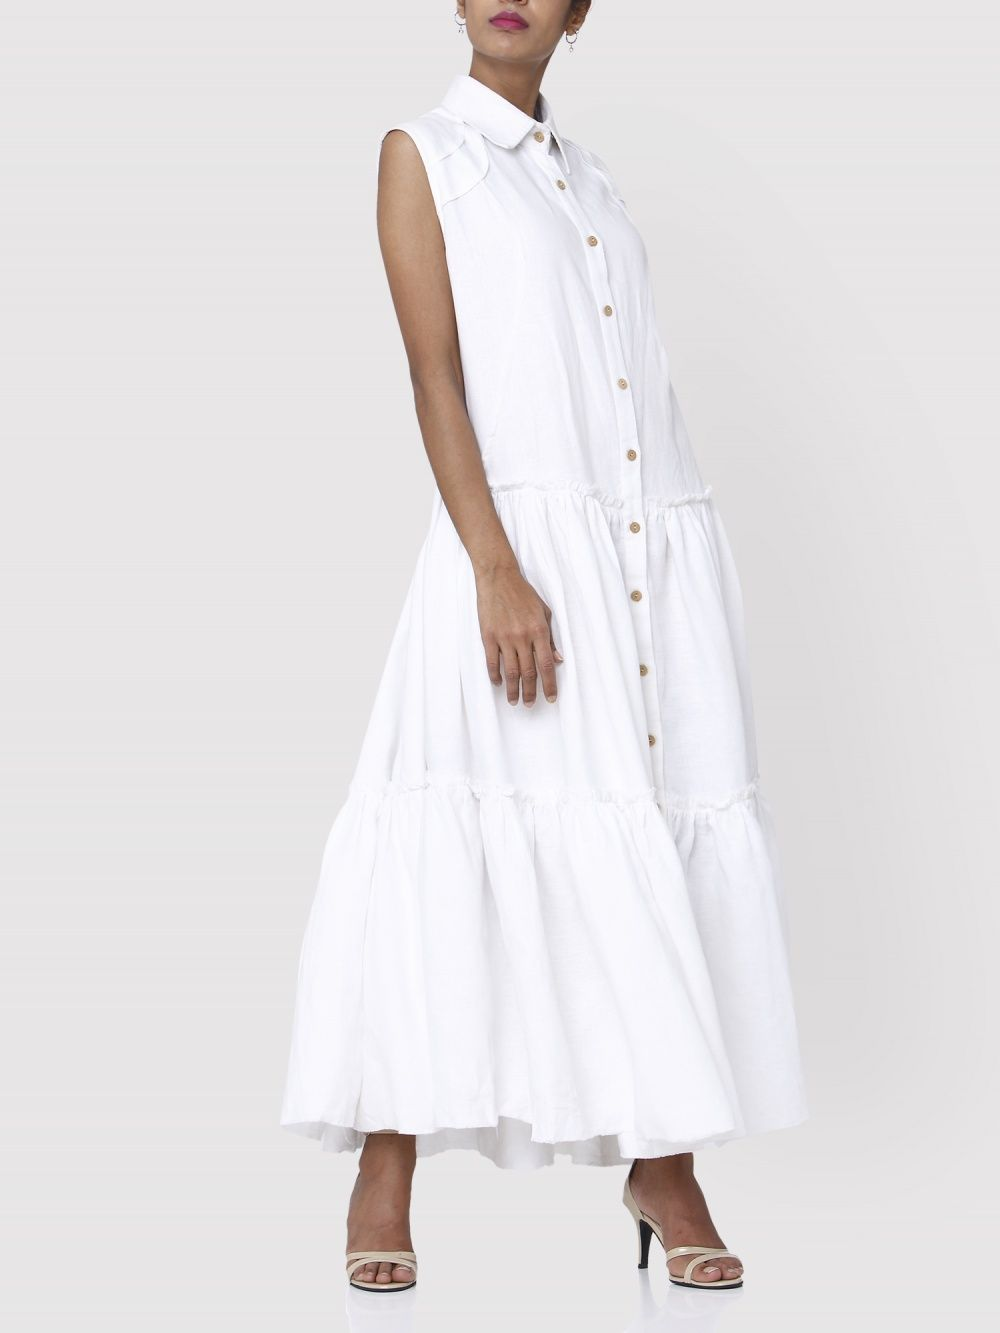 d8571b1fe9c Aruni Dresses   Buy Aruni White Linen Maxi Dress Online